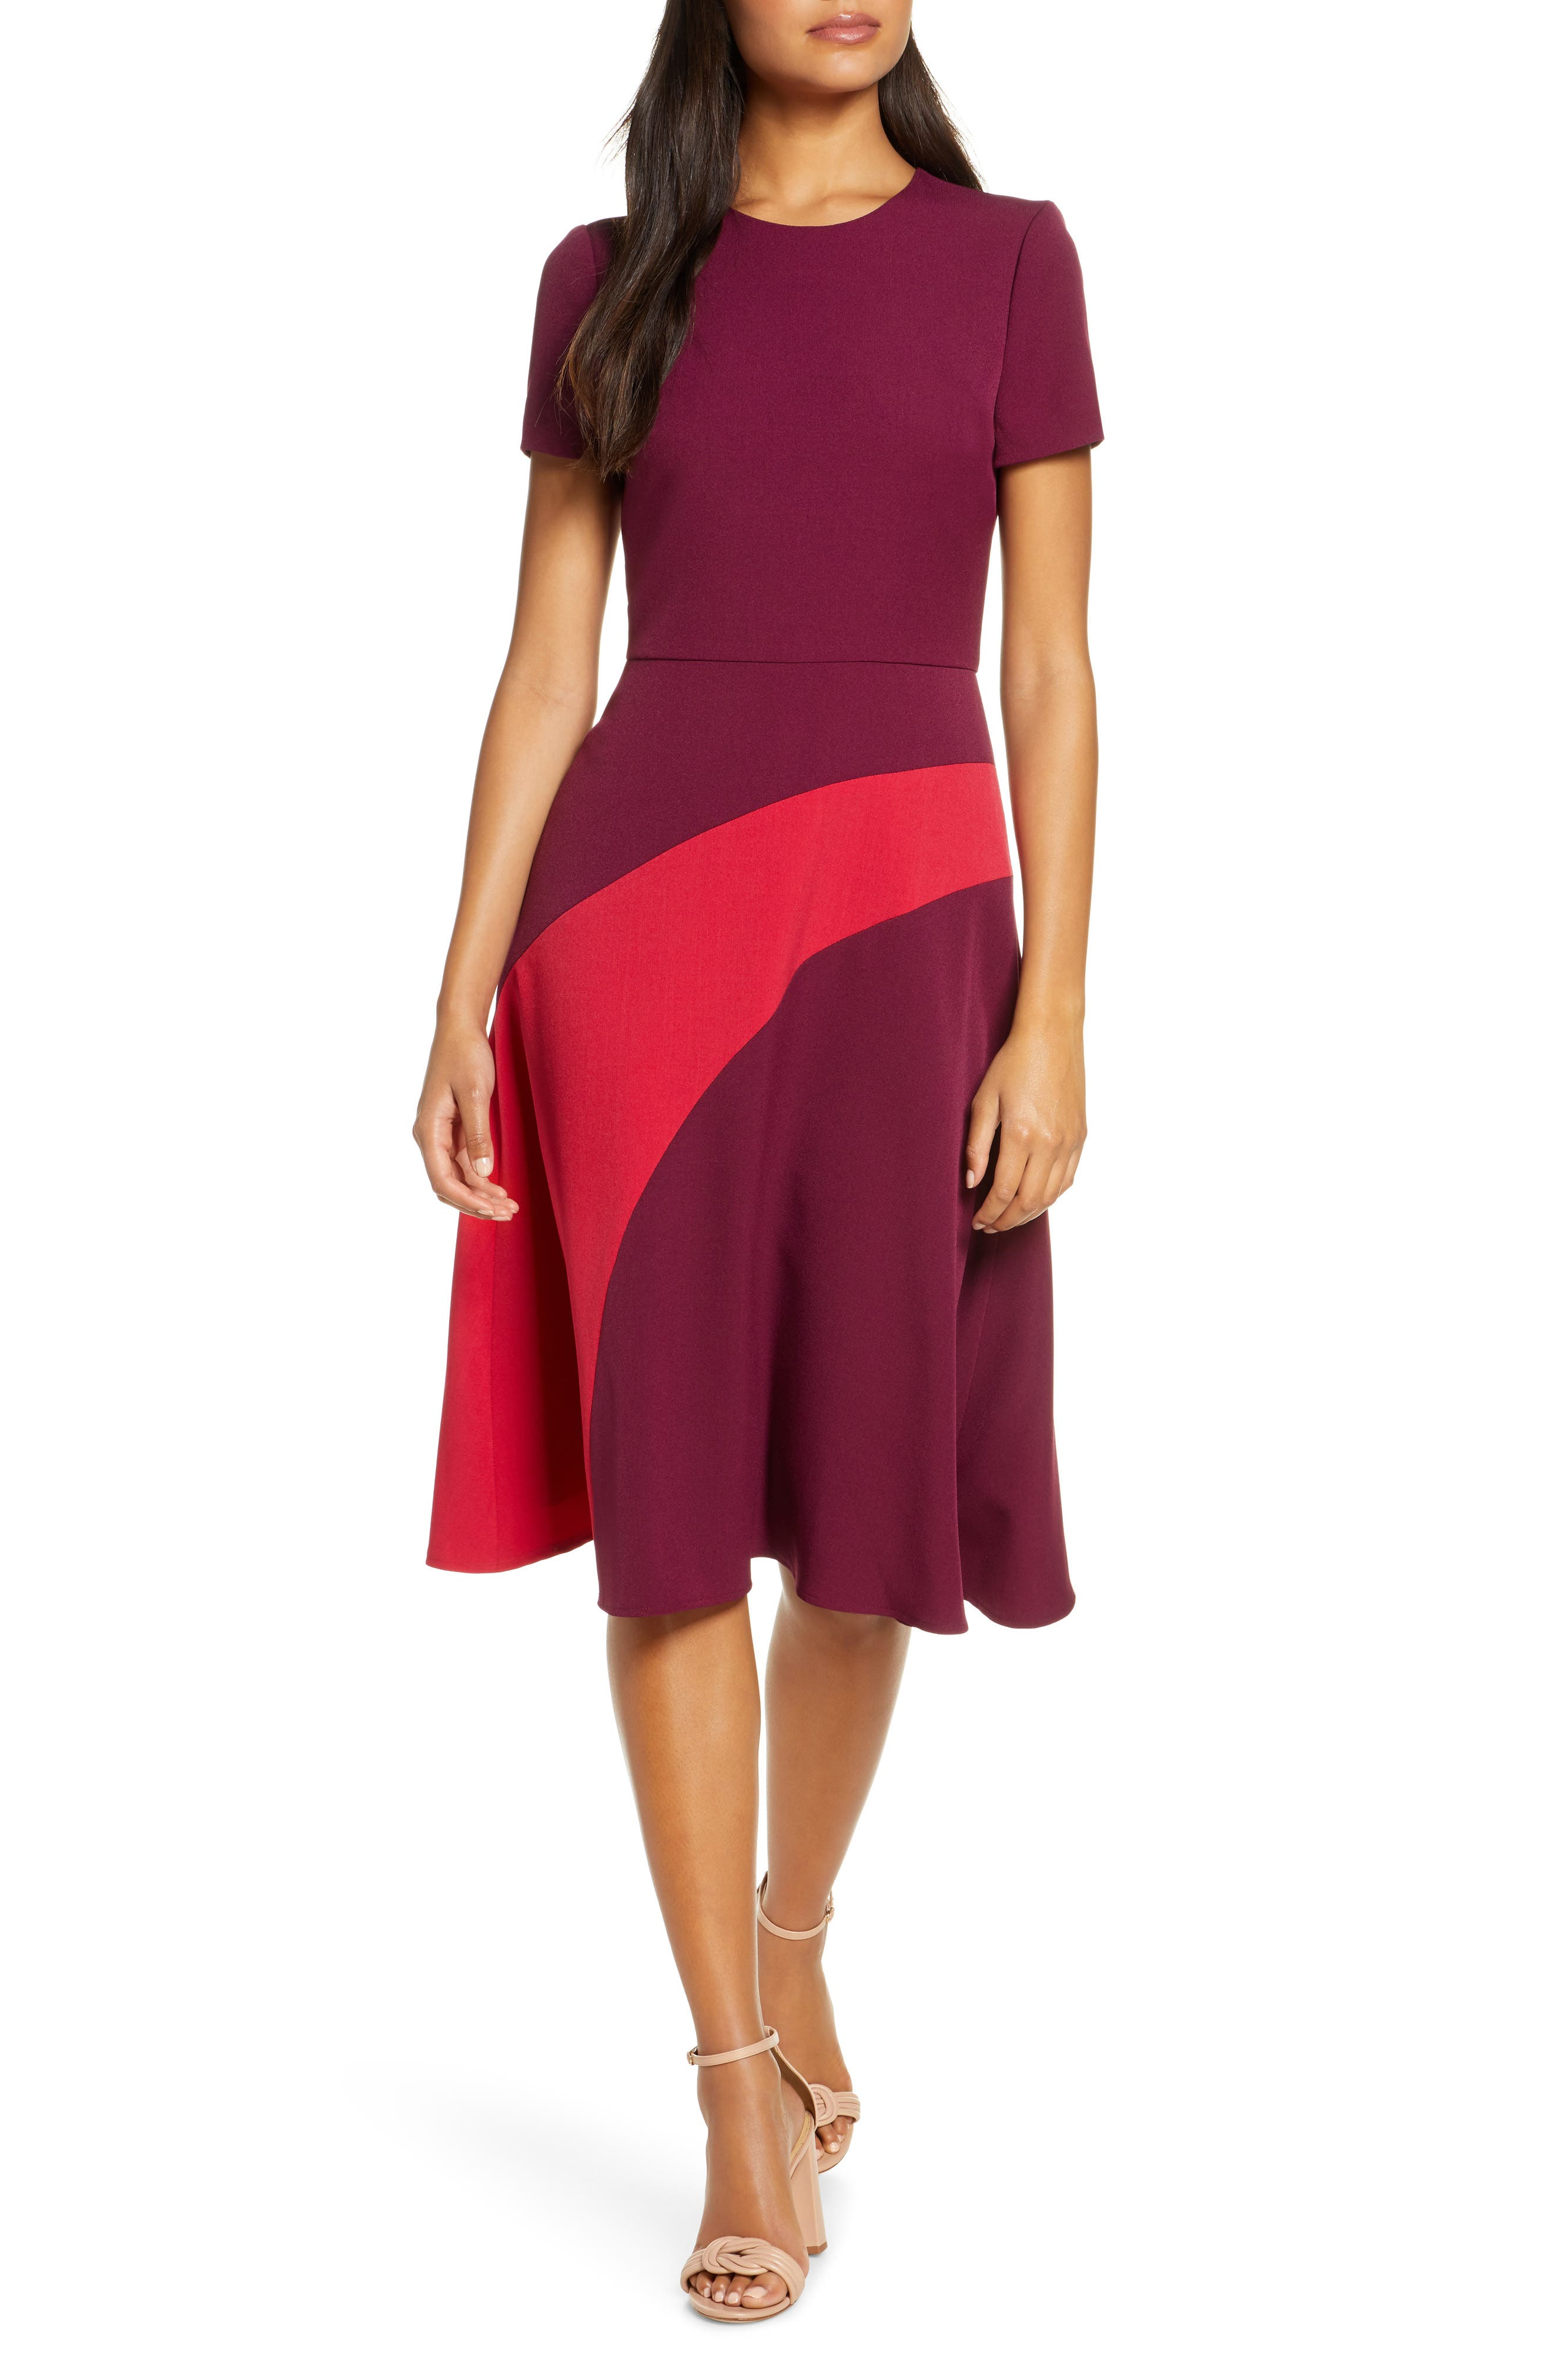 1920s Day Dresses, Tea Dresses, Mature Dresses with Sleeves Womens Maggy London Colorblock A-Line Dress $73.98 AT vintagedancer.com